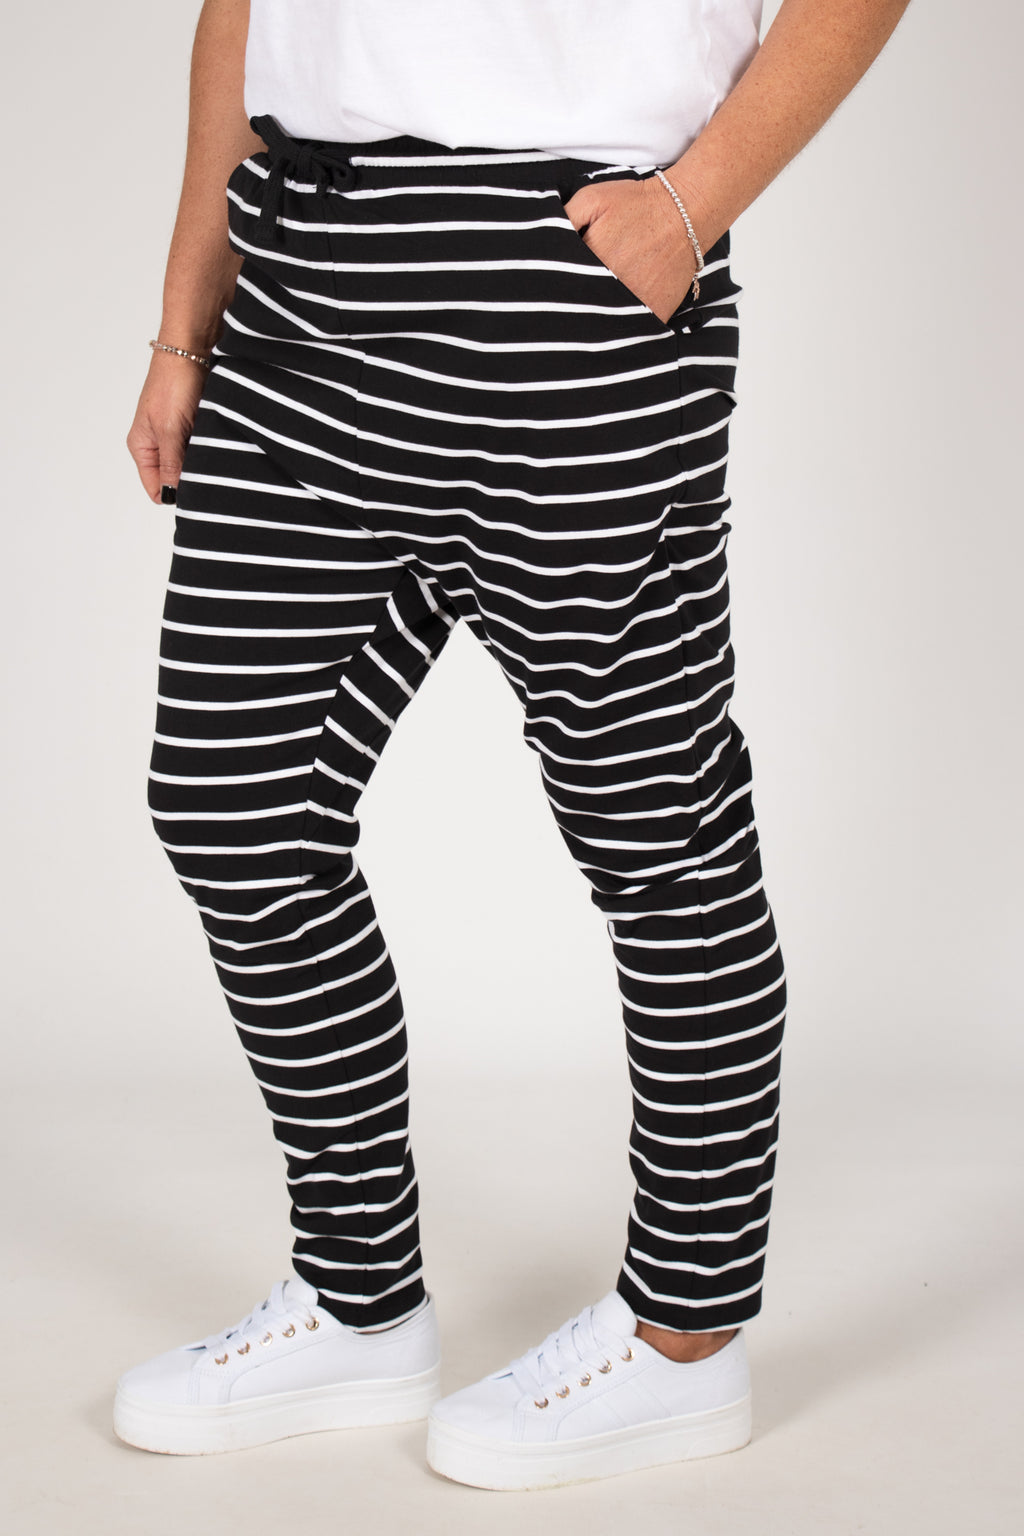 Jade Pant Black/White